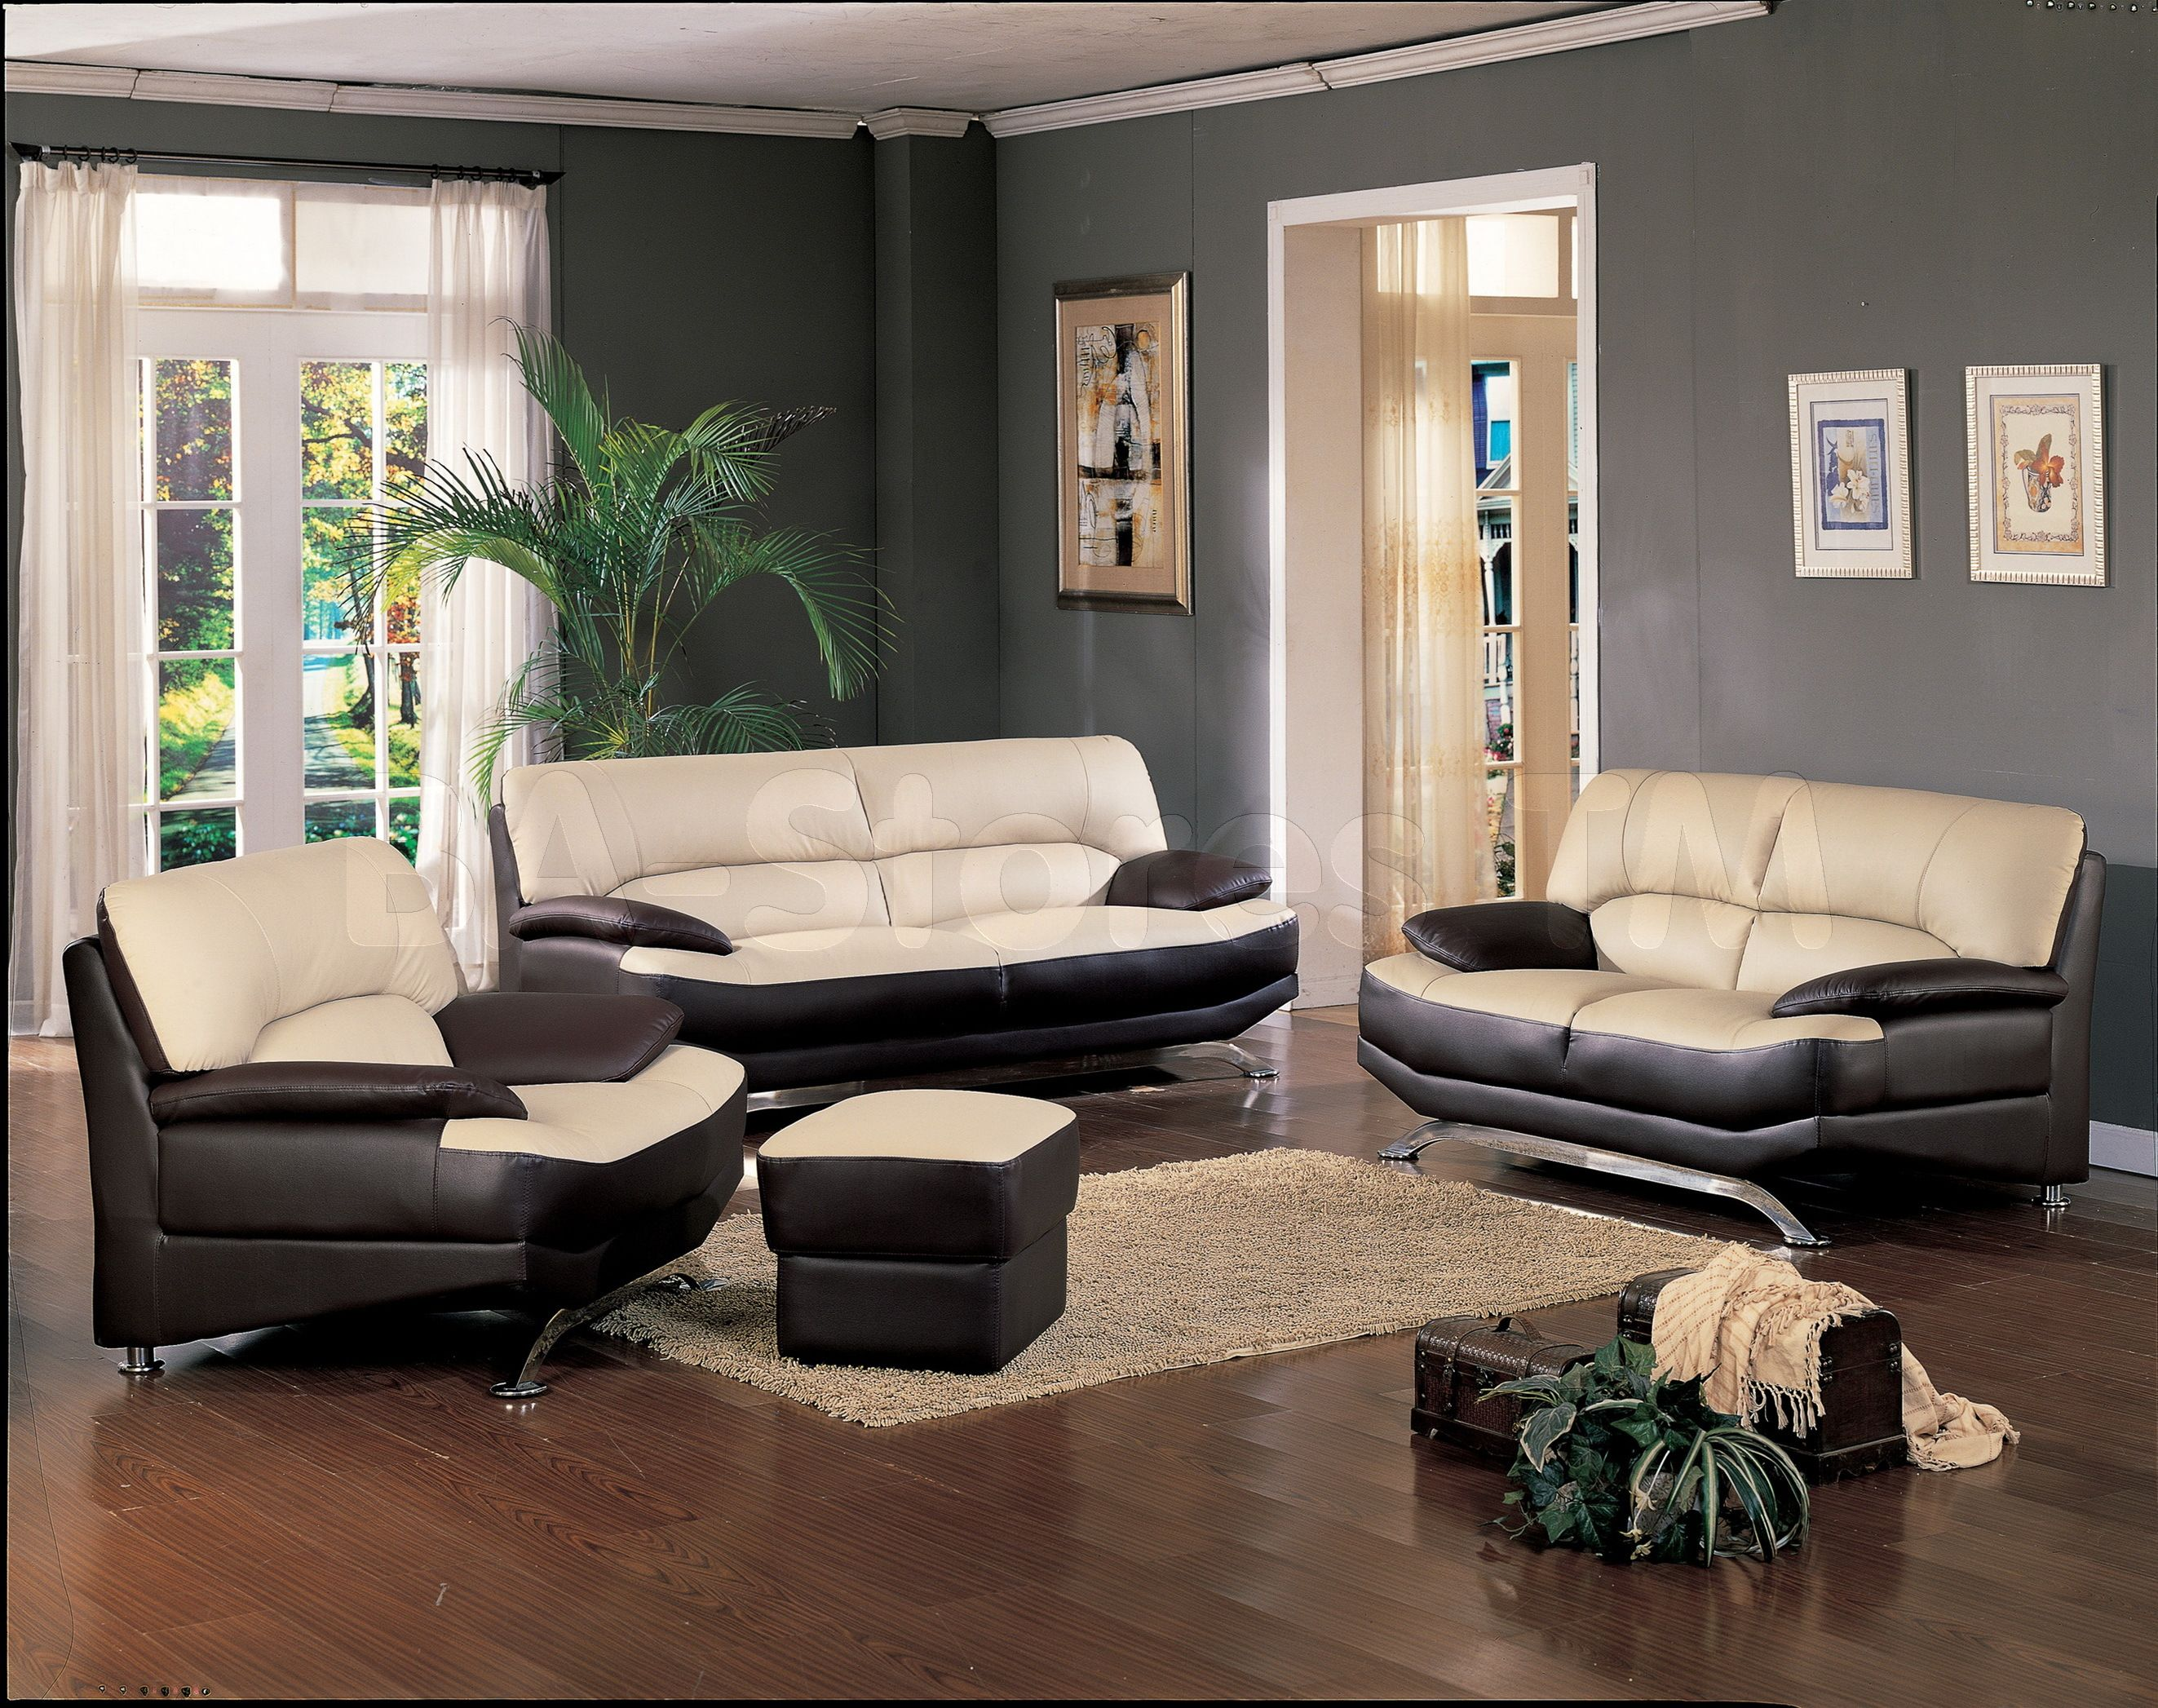 Leather Living Room Sets On 27 Best Images About Living Room Leather Furniture On Pinterest